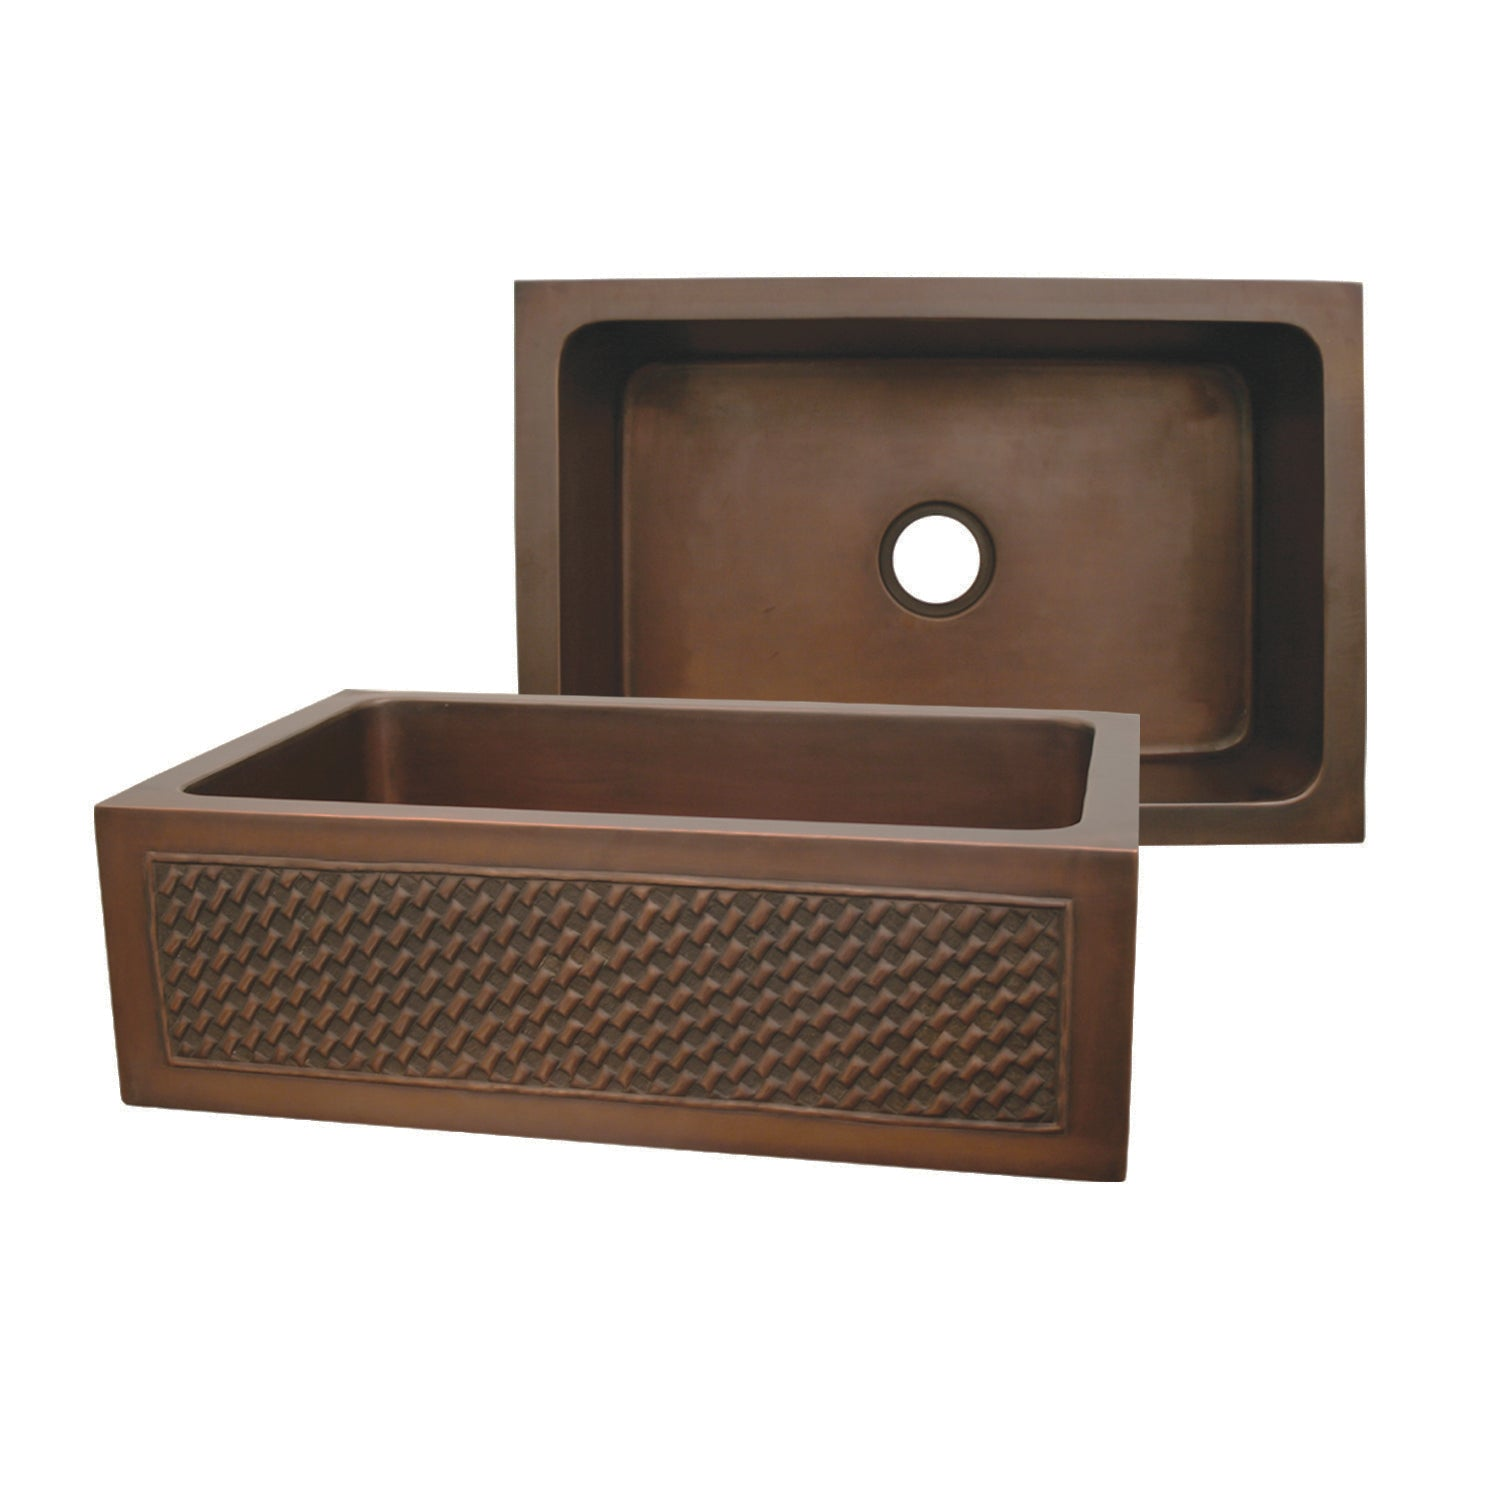 "Copperhaus 30"" Rectangular Undermount Sink with a Basket Weave Design Front Apron"